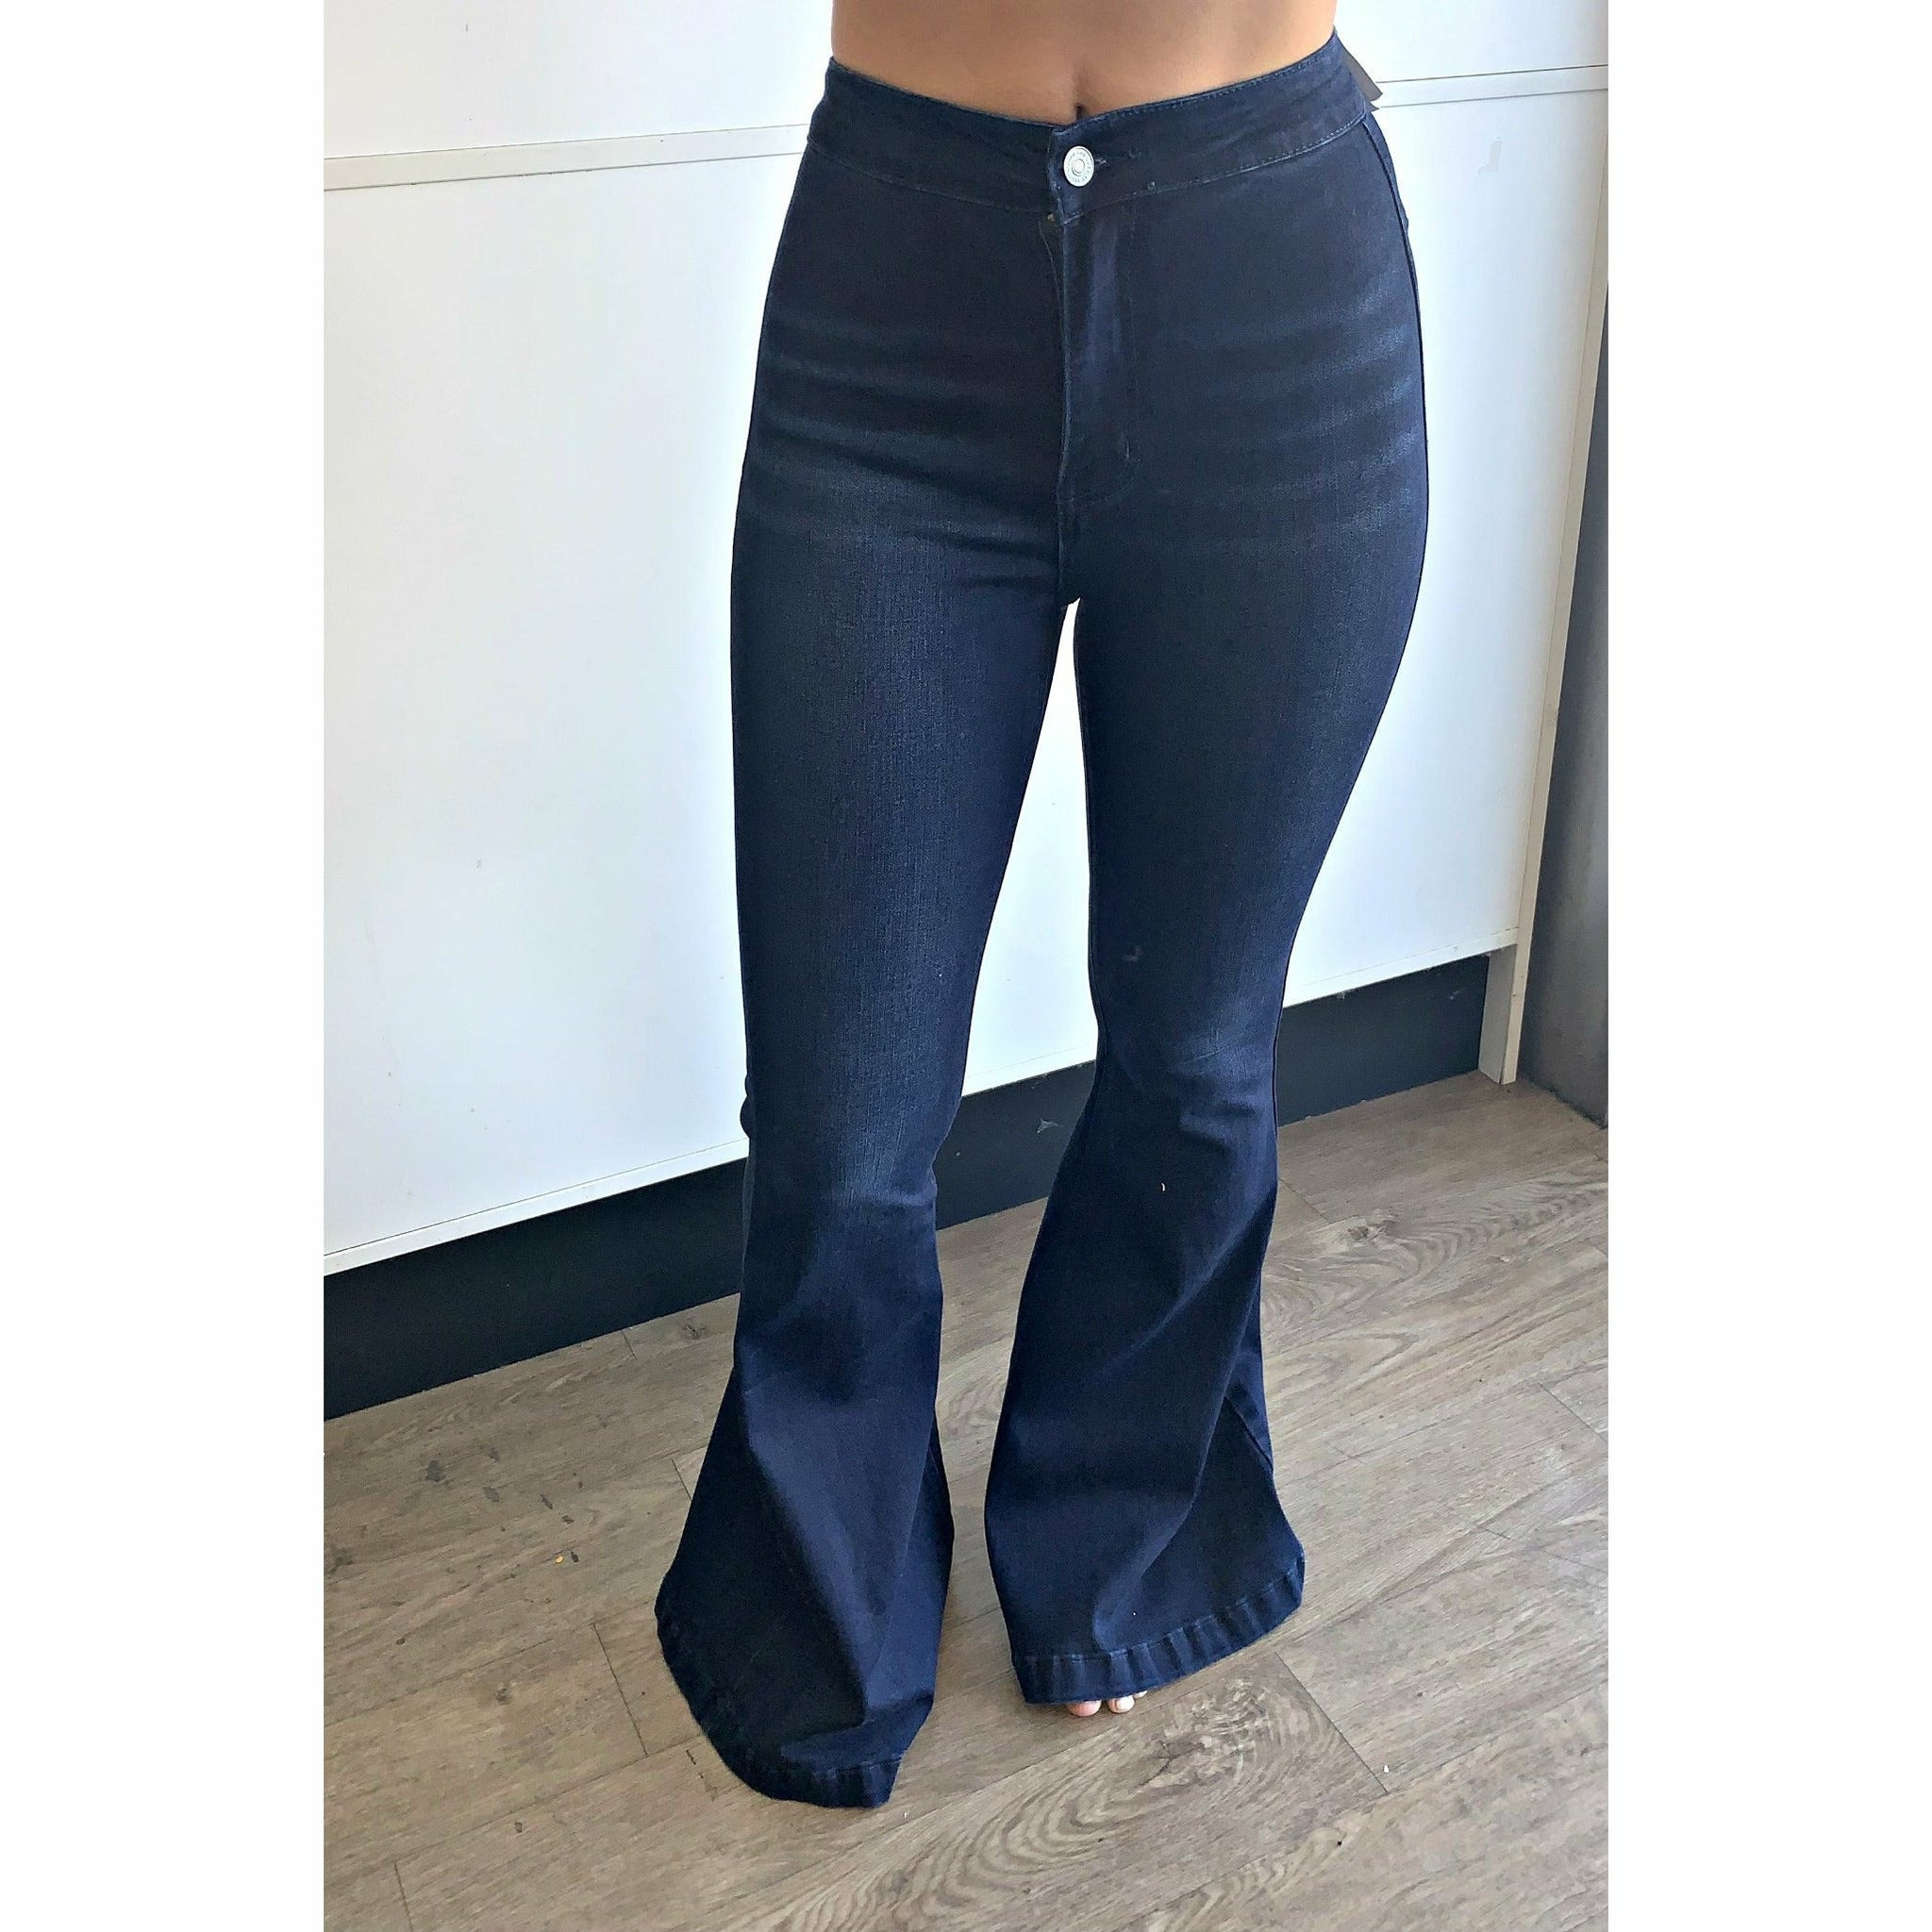 Kancan High Rises Flare Jeans Gabriel Clothing Company